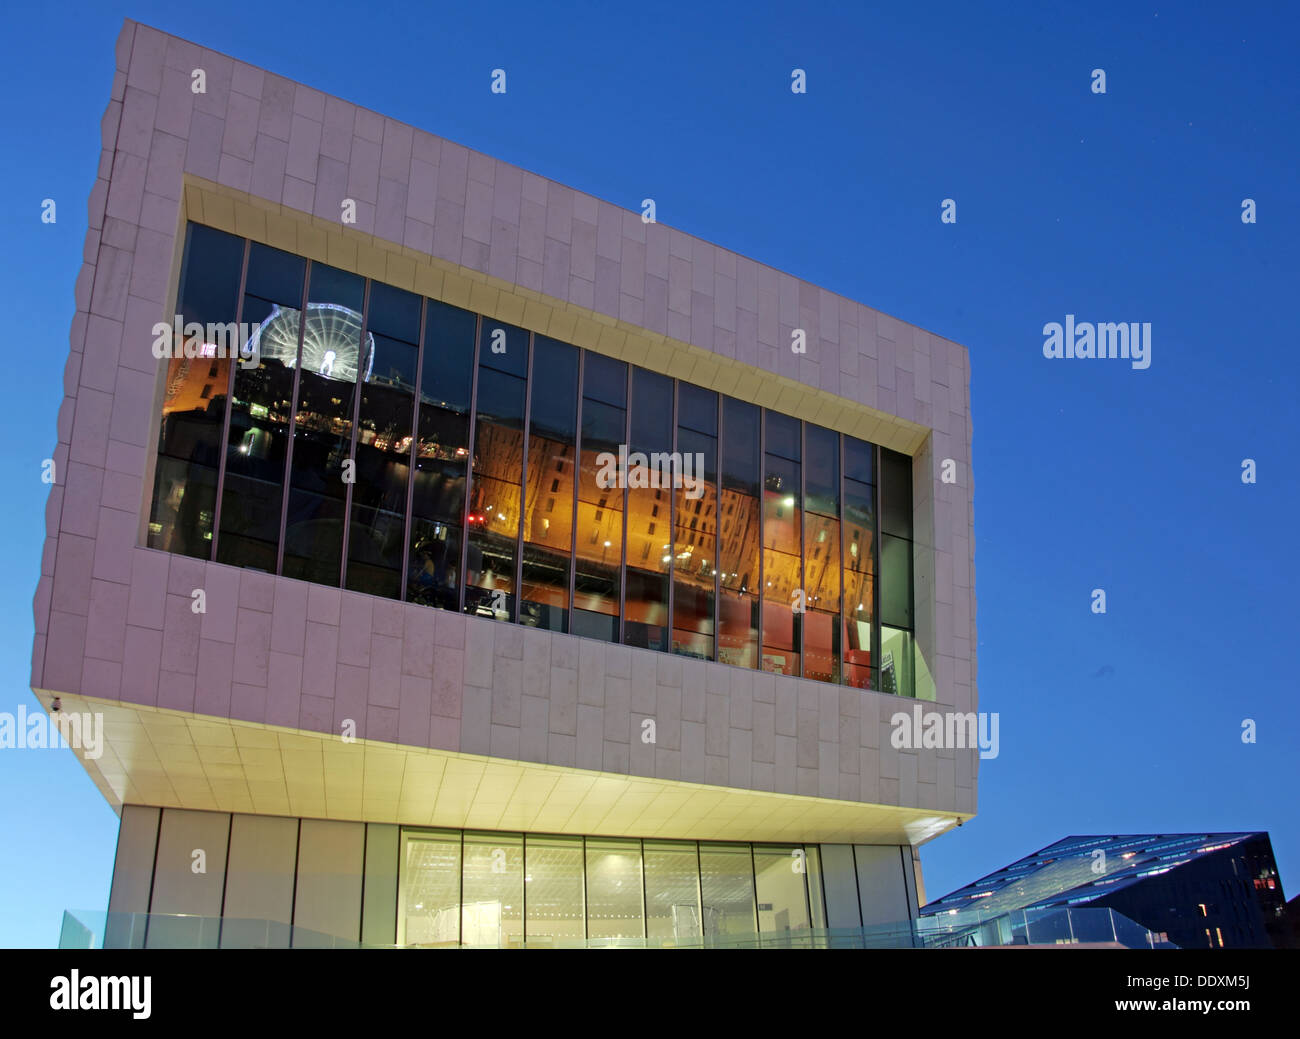 Albert Dock reflected in new museum at Nighttime liverpool Merseyside England UK Stock Photo